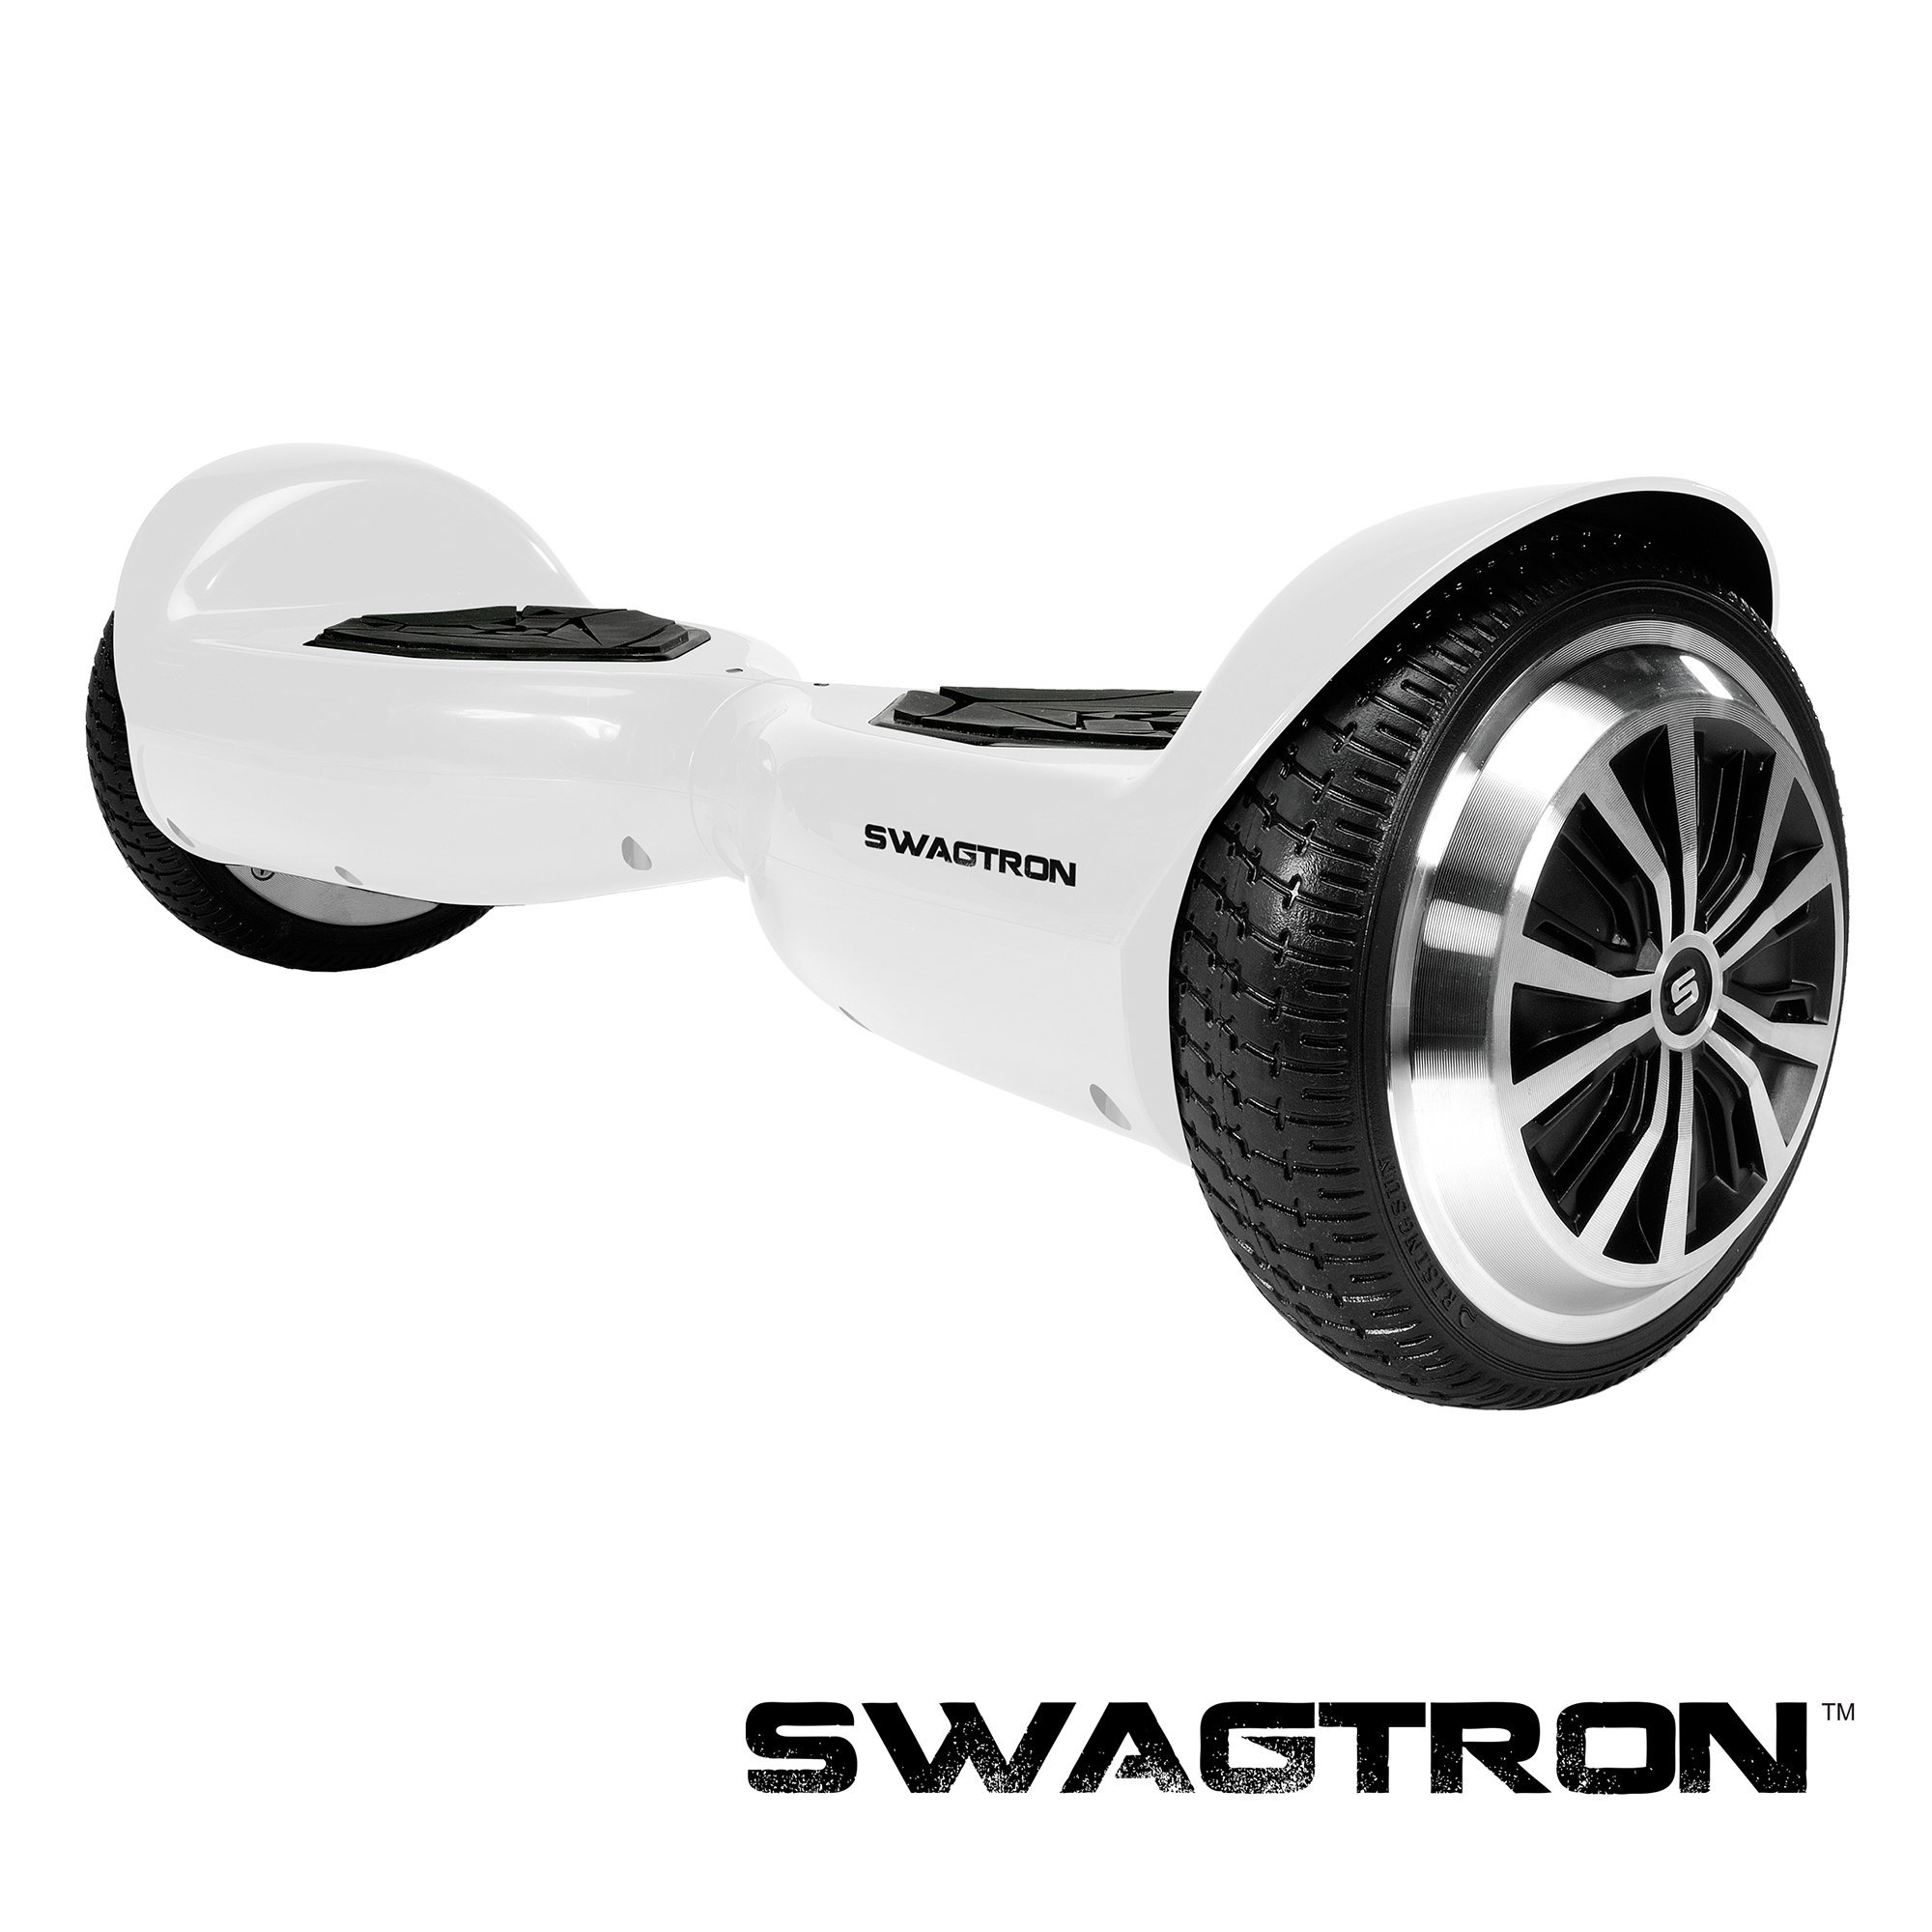 Swagtron 80668-5 T5 Entry Level Hoverboard for Kids and Young Adults; Optional Learning Mode (White) by Swagtron